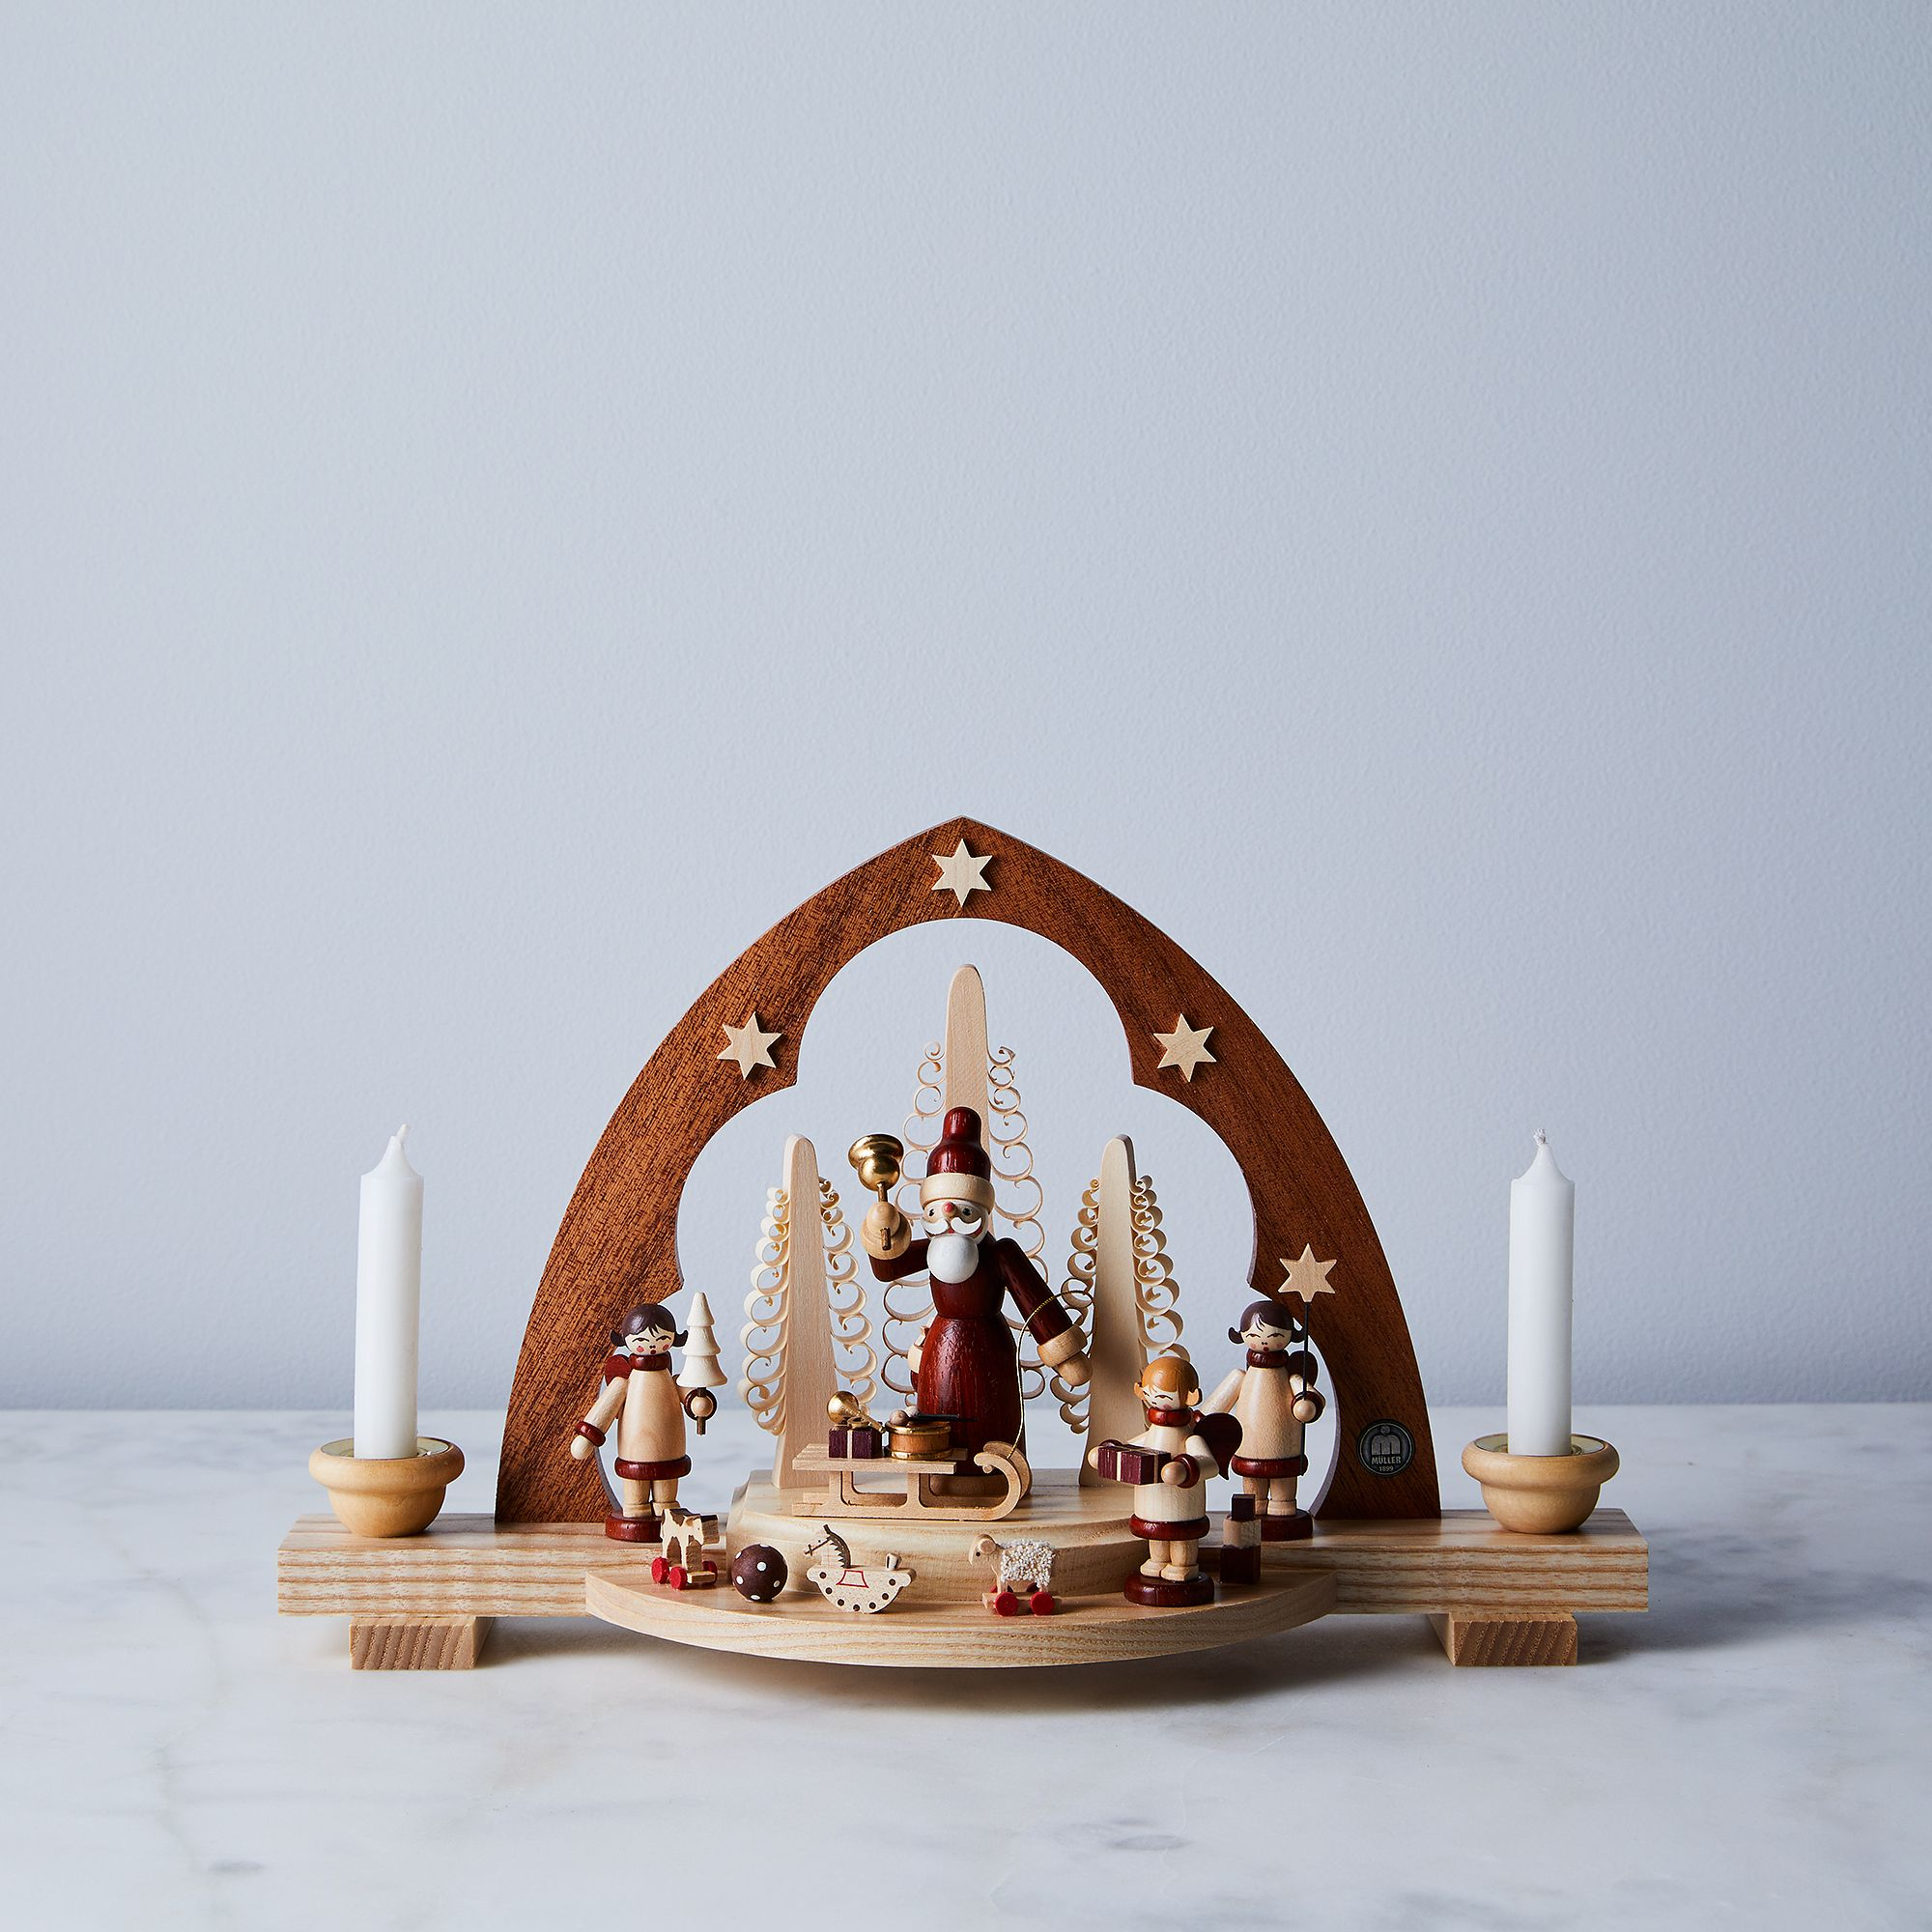 84c3d997 1fff 4600 8147 1bf6c3b0e73d  2017 1026 mueller german handcrafted holiday decor holiday arch w santa and candles silo ty mecham 007